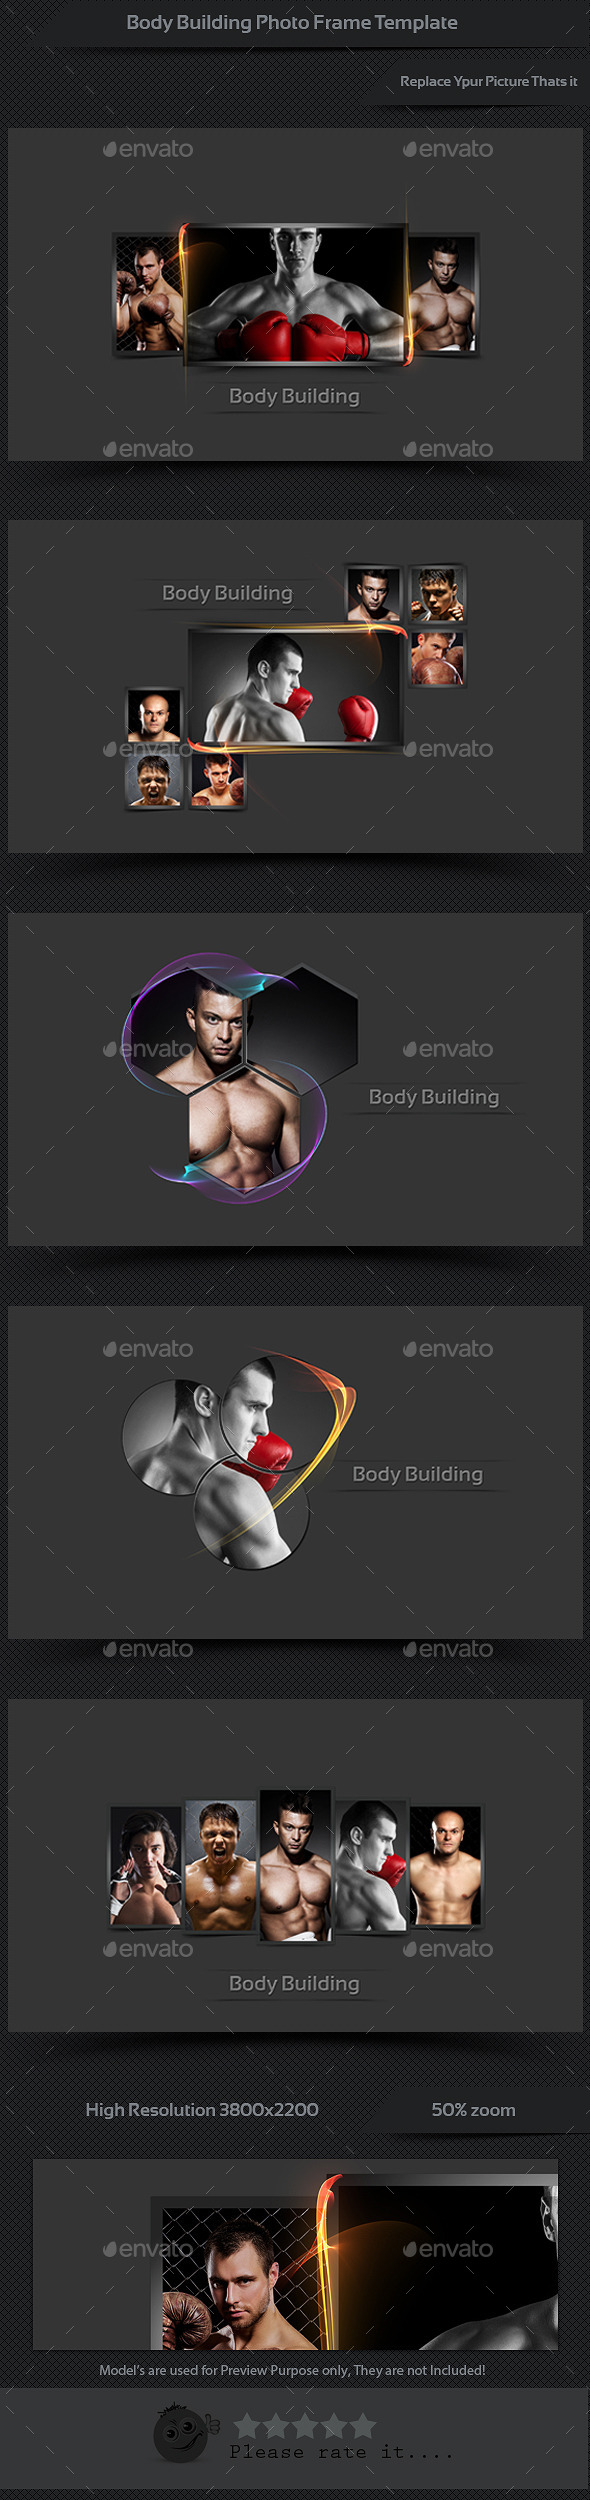 GraphicRiver Body Building Photo Frame Template 10755698